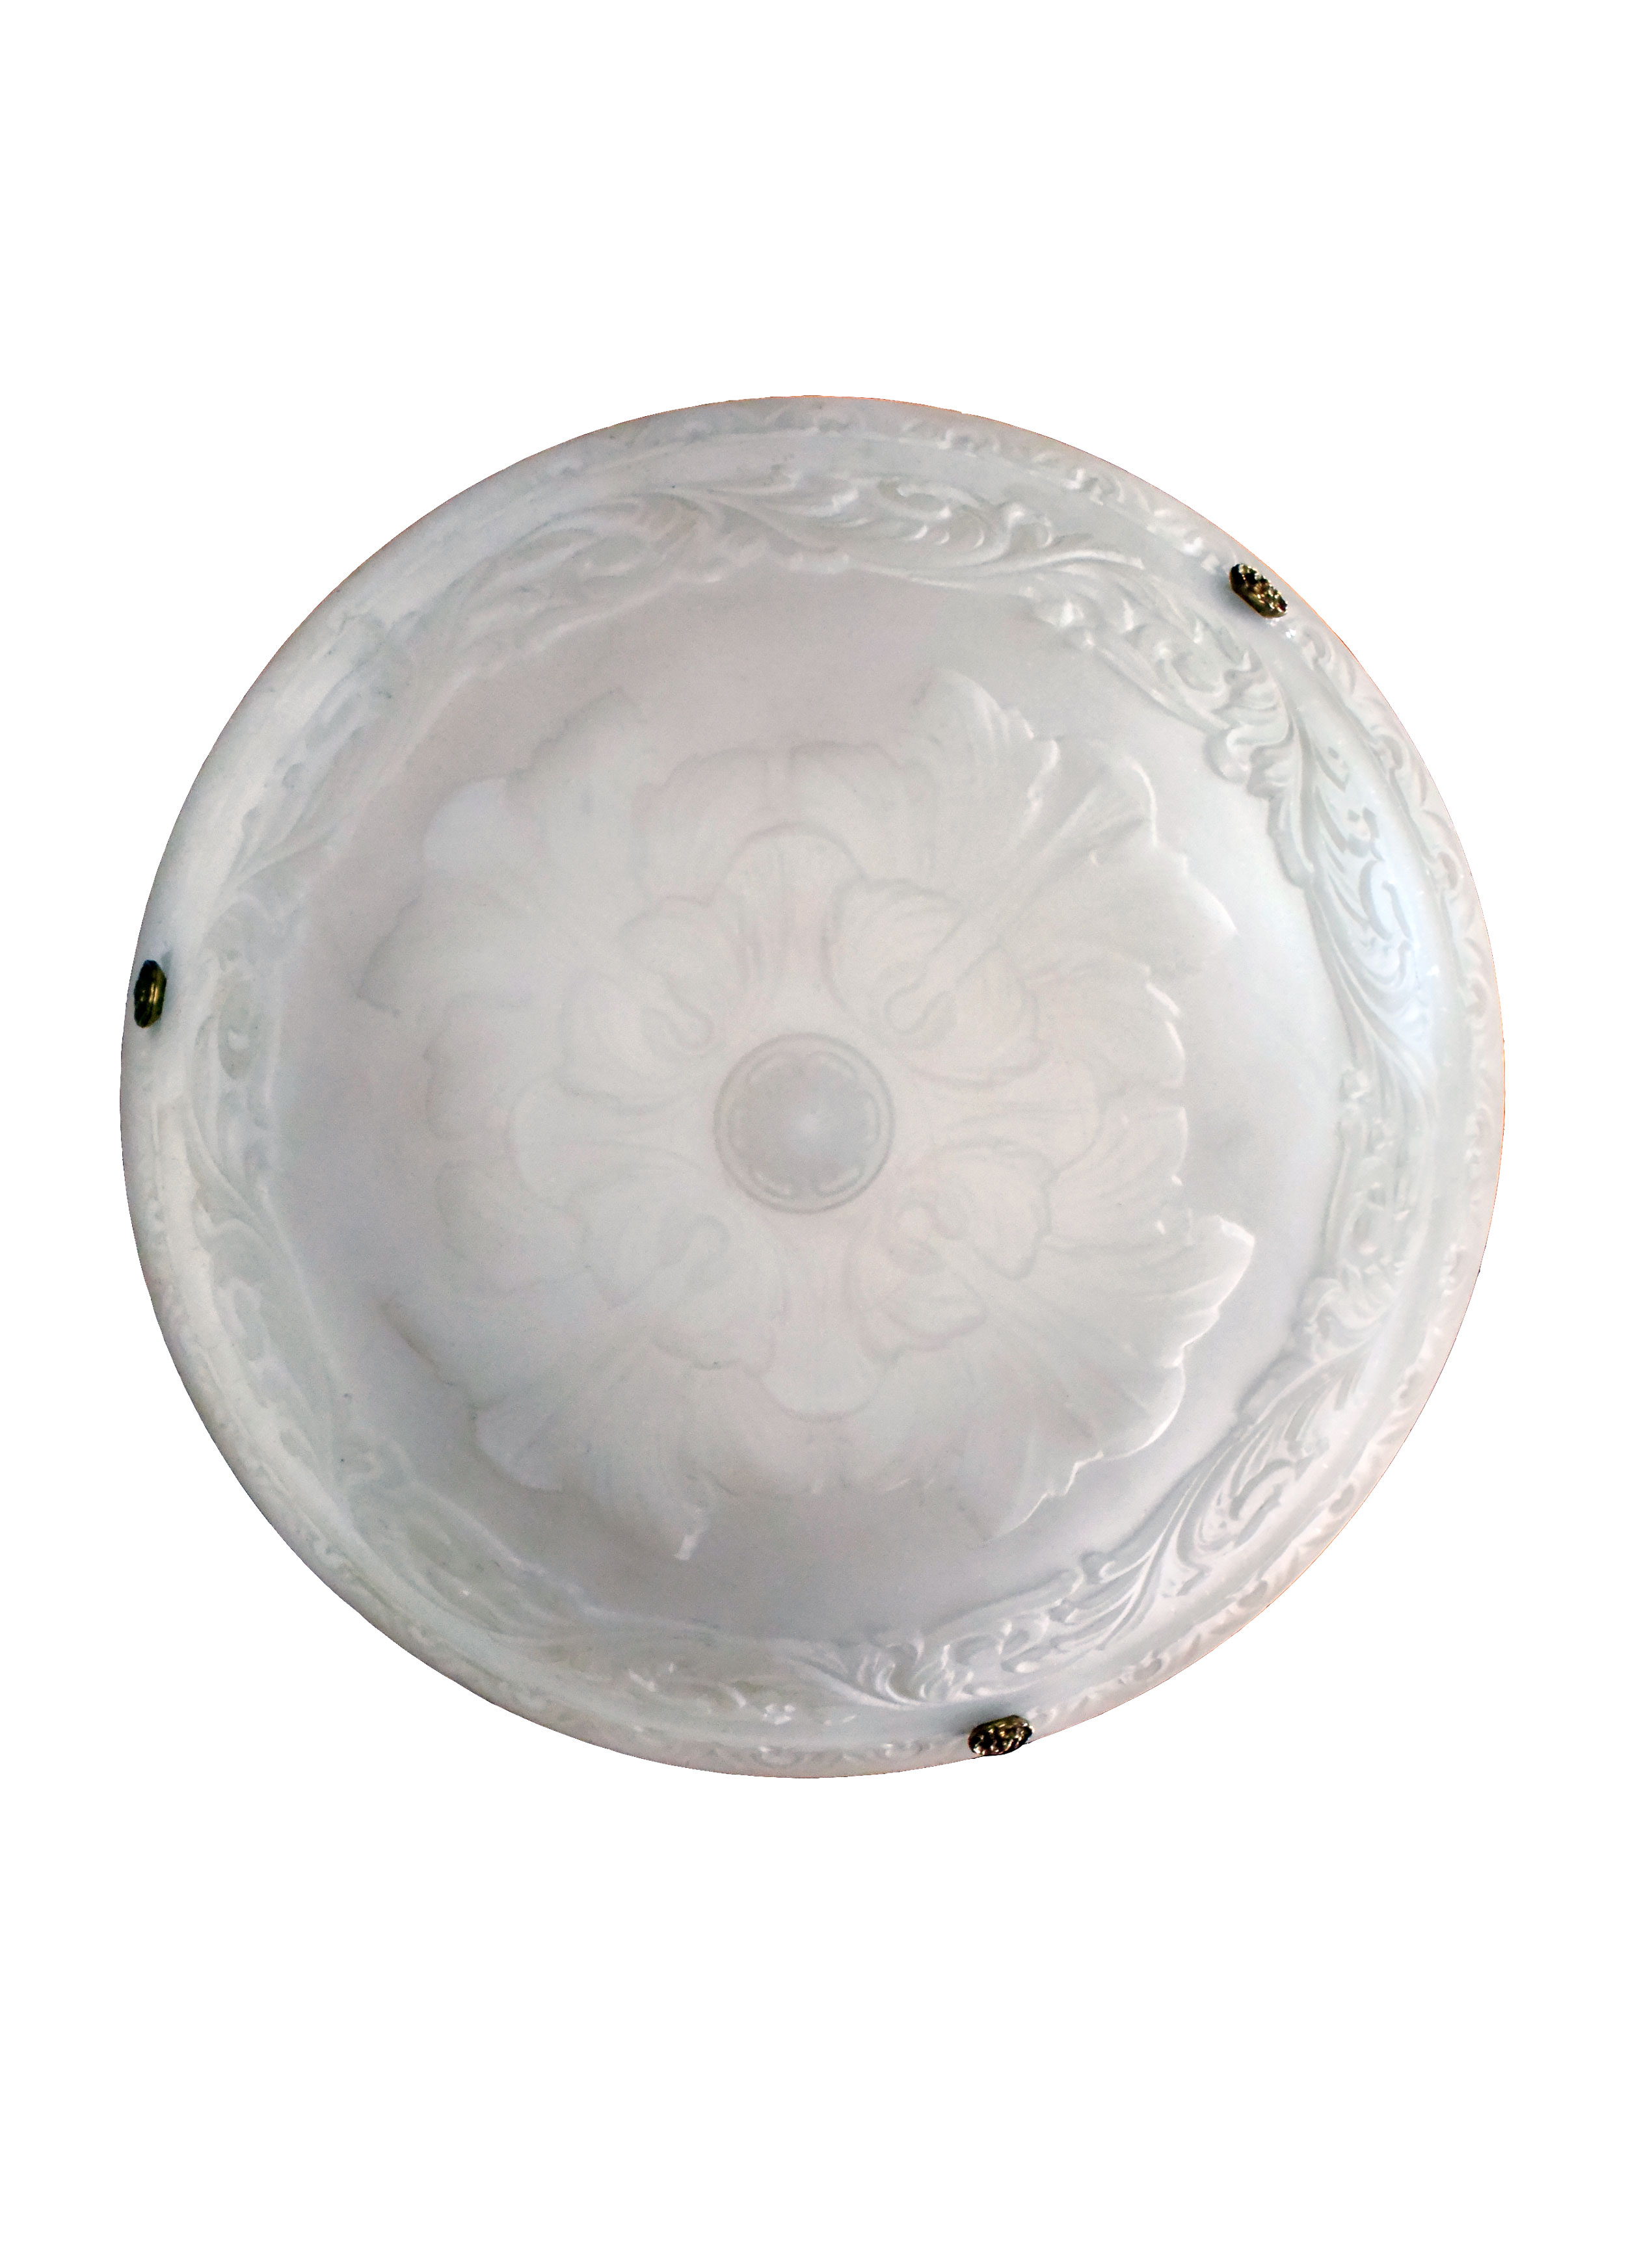 47151-cast-glass-bowl-fixture-with-floral-roping-bottom-view.jpg